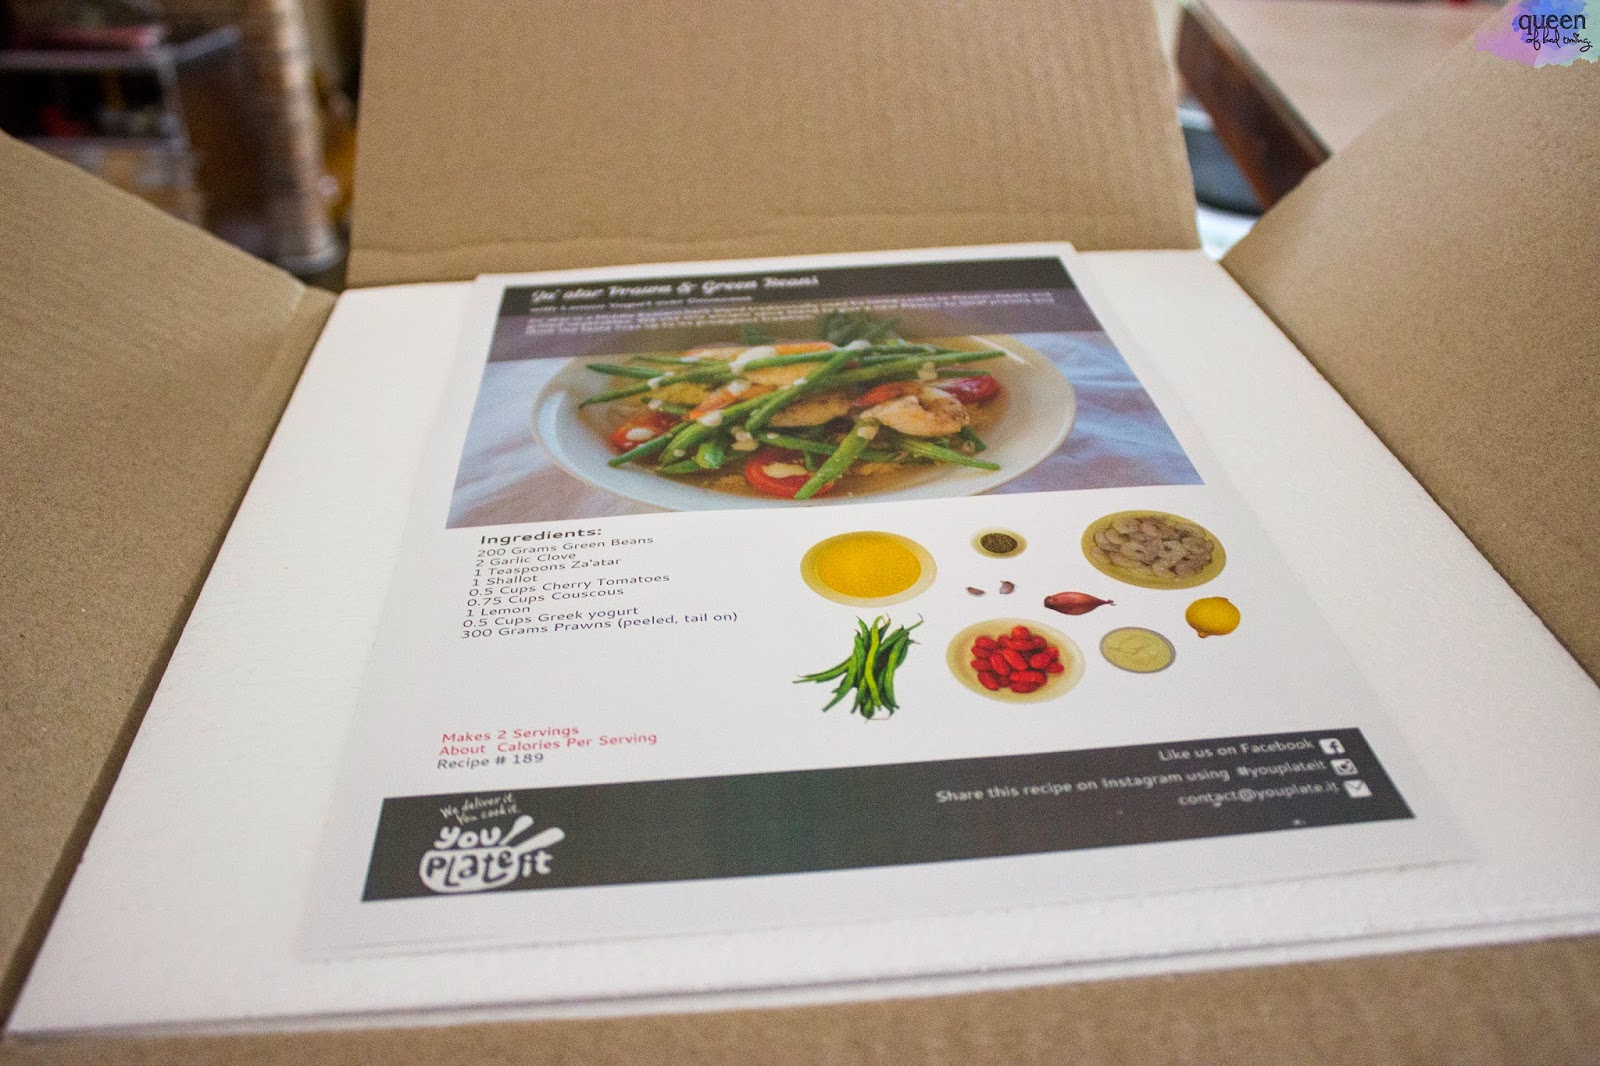 Meal time made easy with you plate it perth queen of bad timing at 4pm sunday my delivery of ingredients arrived encased in a styrofoam box with ice packs diligently keeping the produce cool and fresh the two meals are forumfinder Choice Image